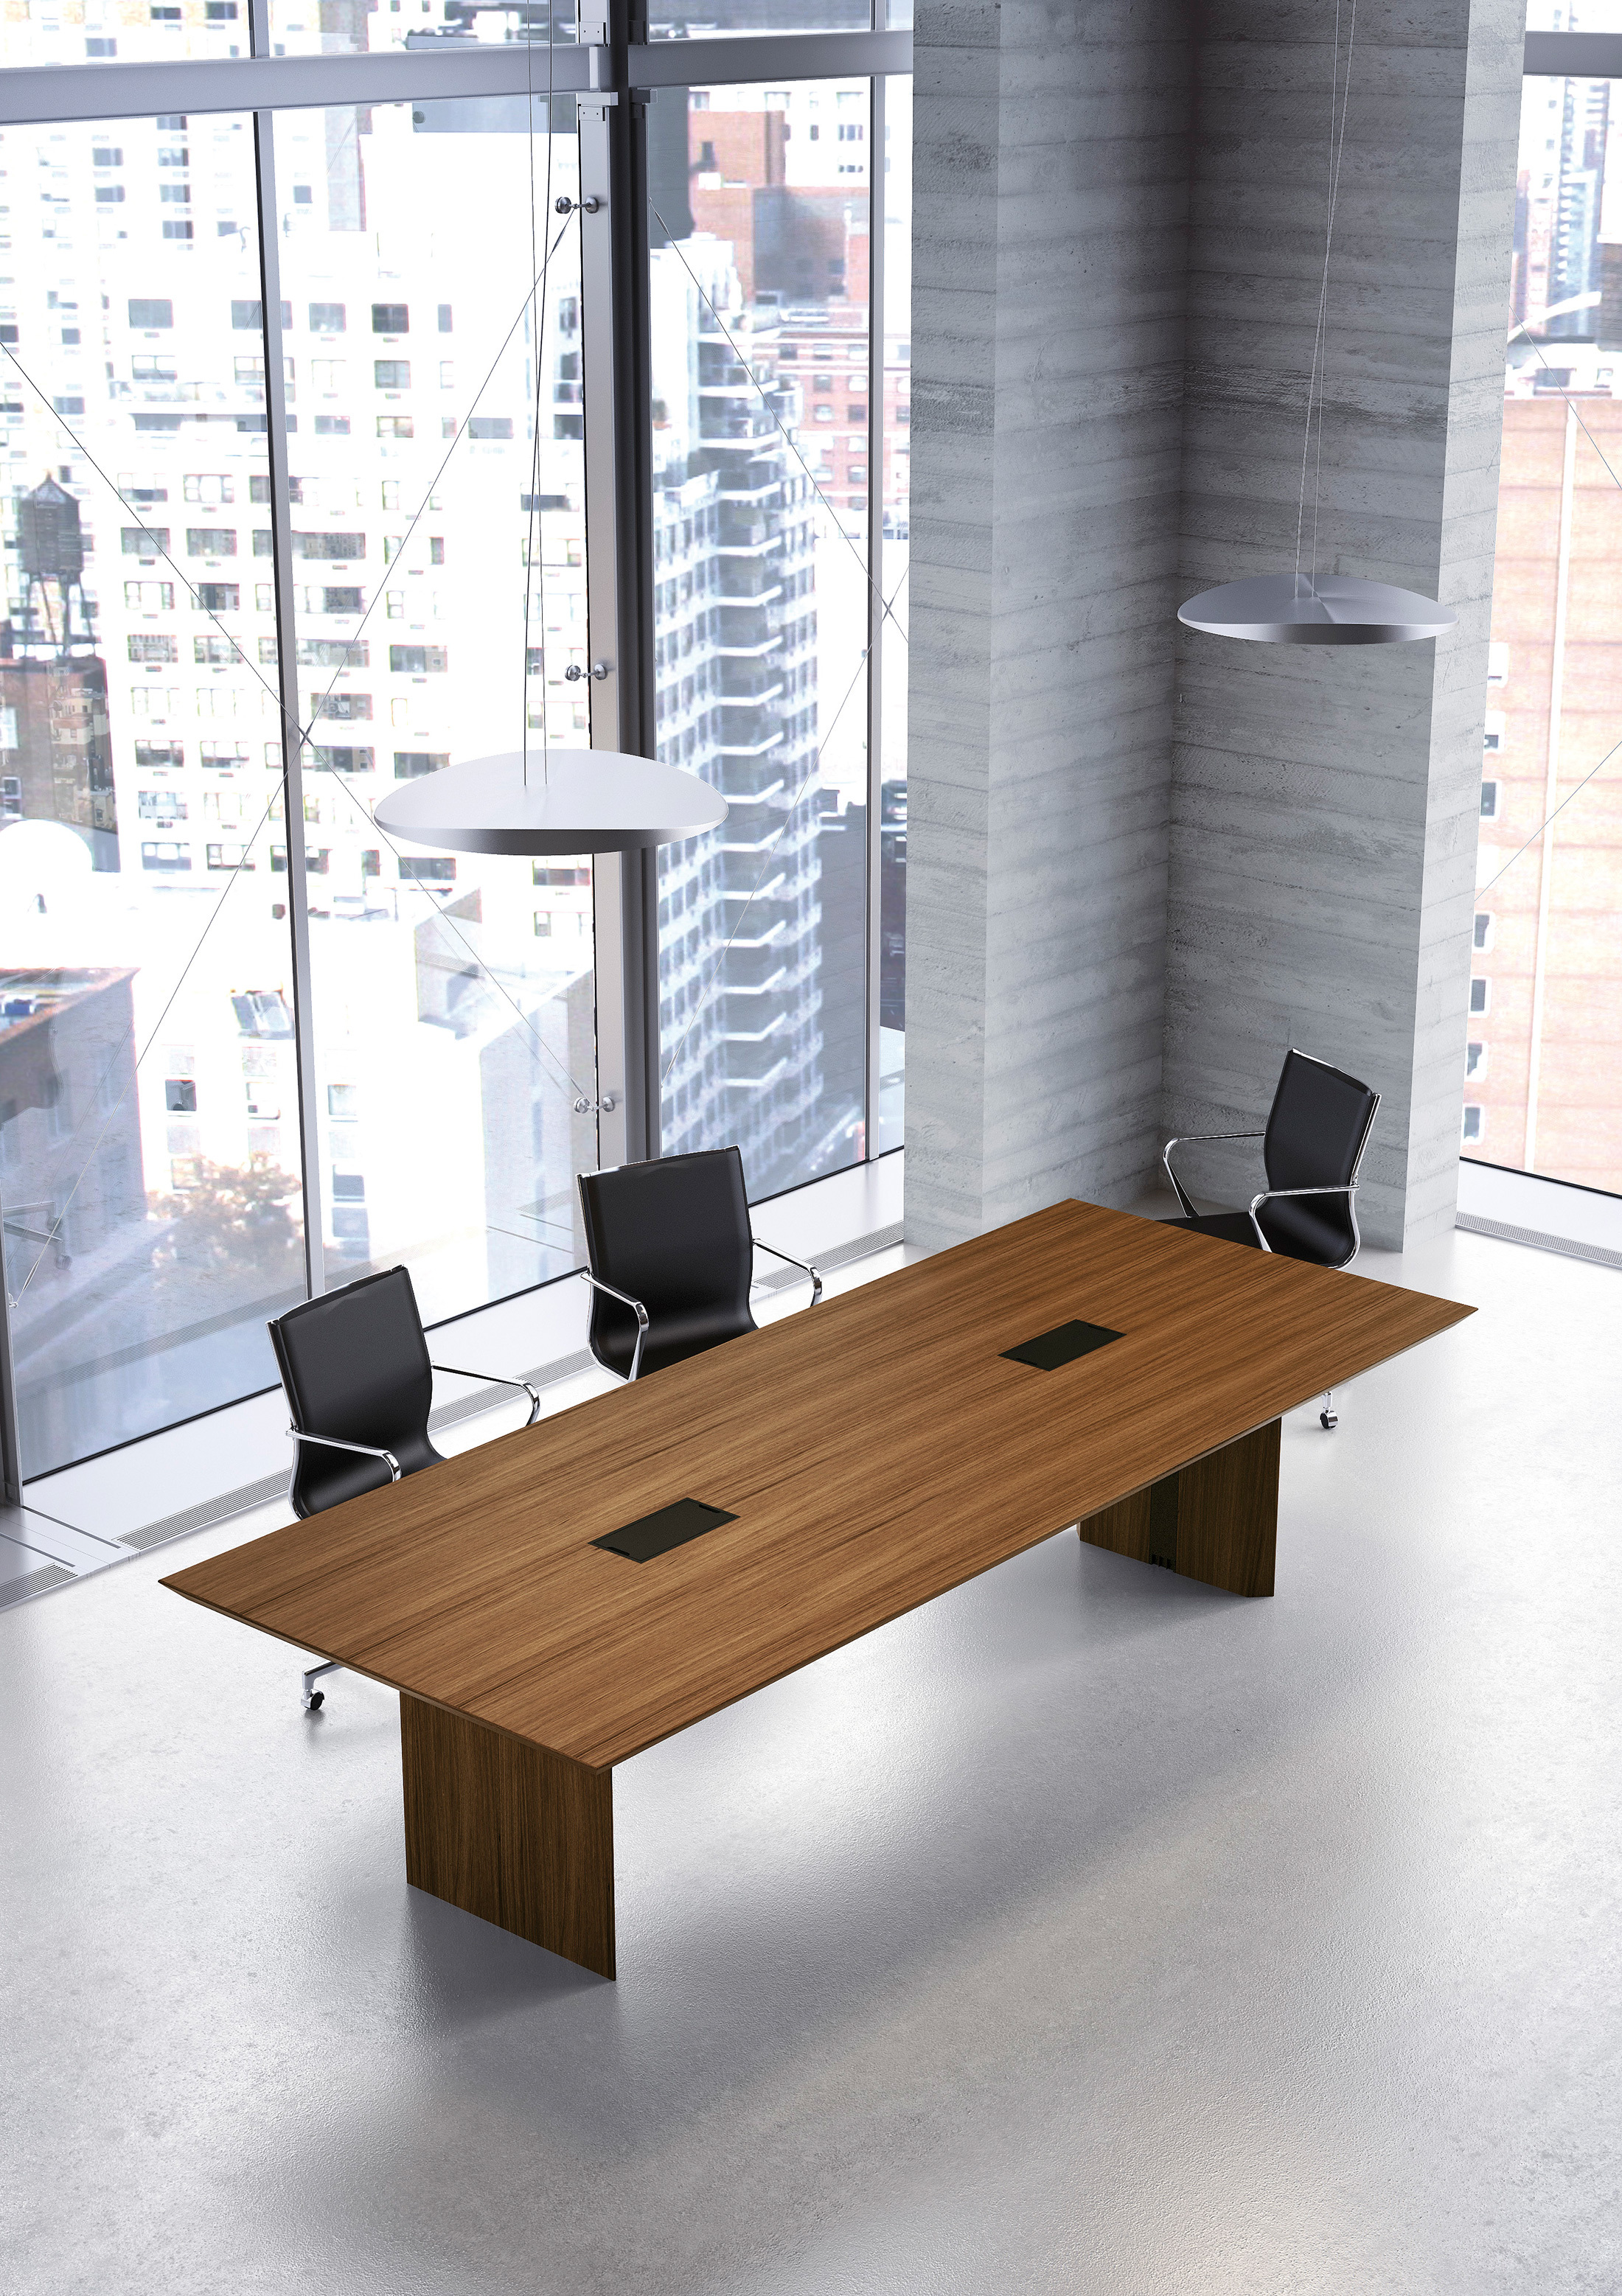 Multipliceo Modular Conference Table By Fantoni STYLEPARK - Modular meeting table